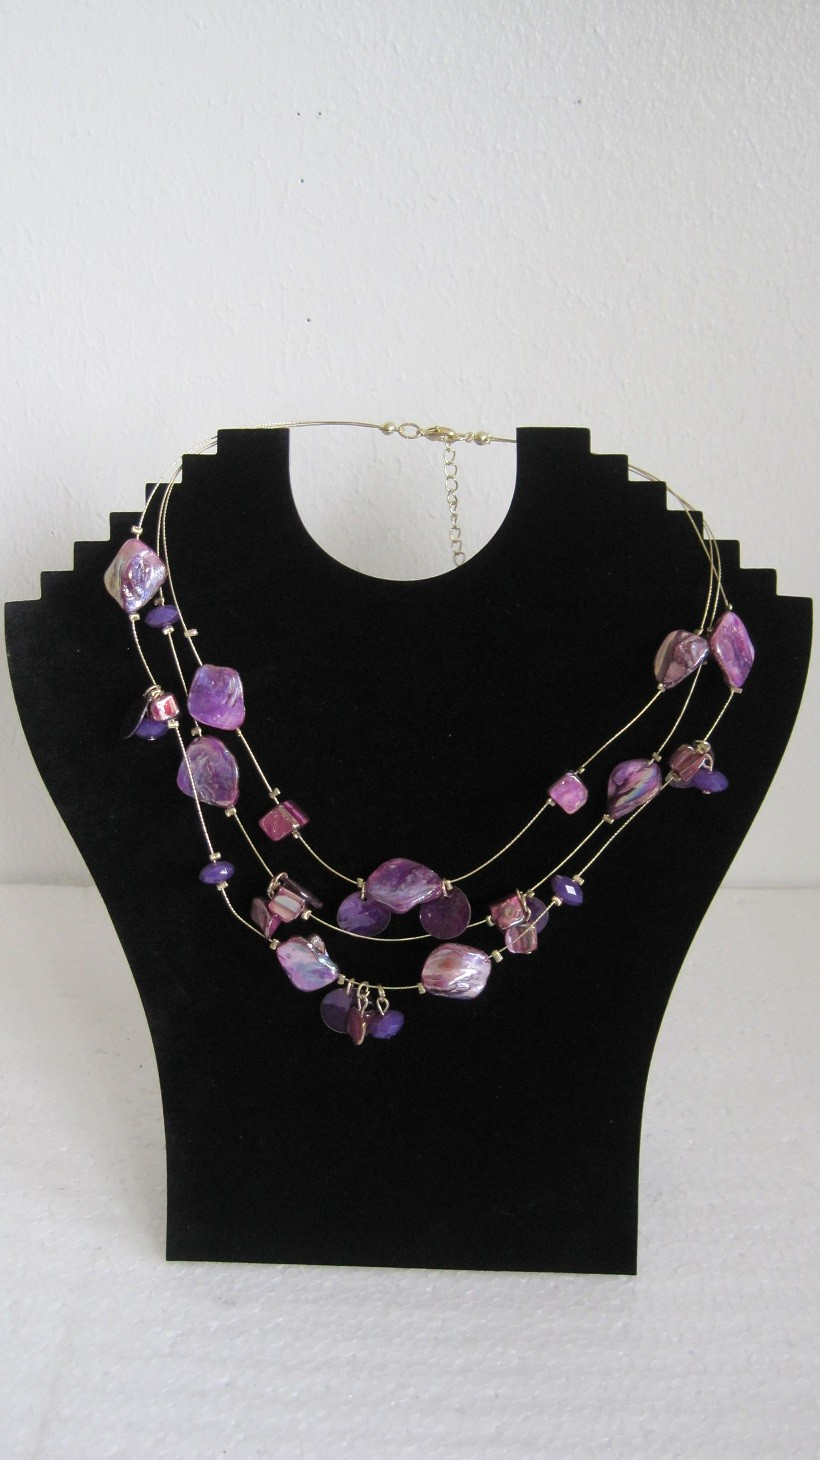 Necklace, Chain Display Stand